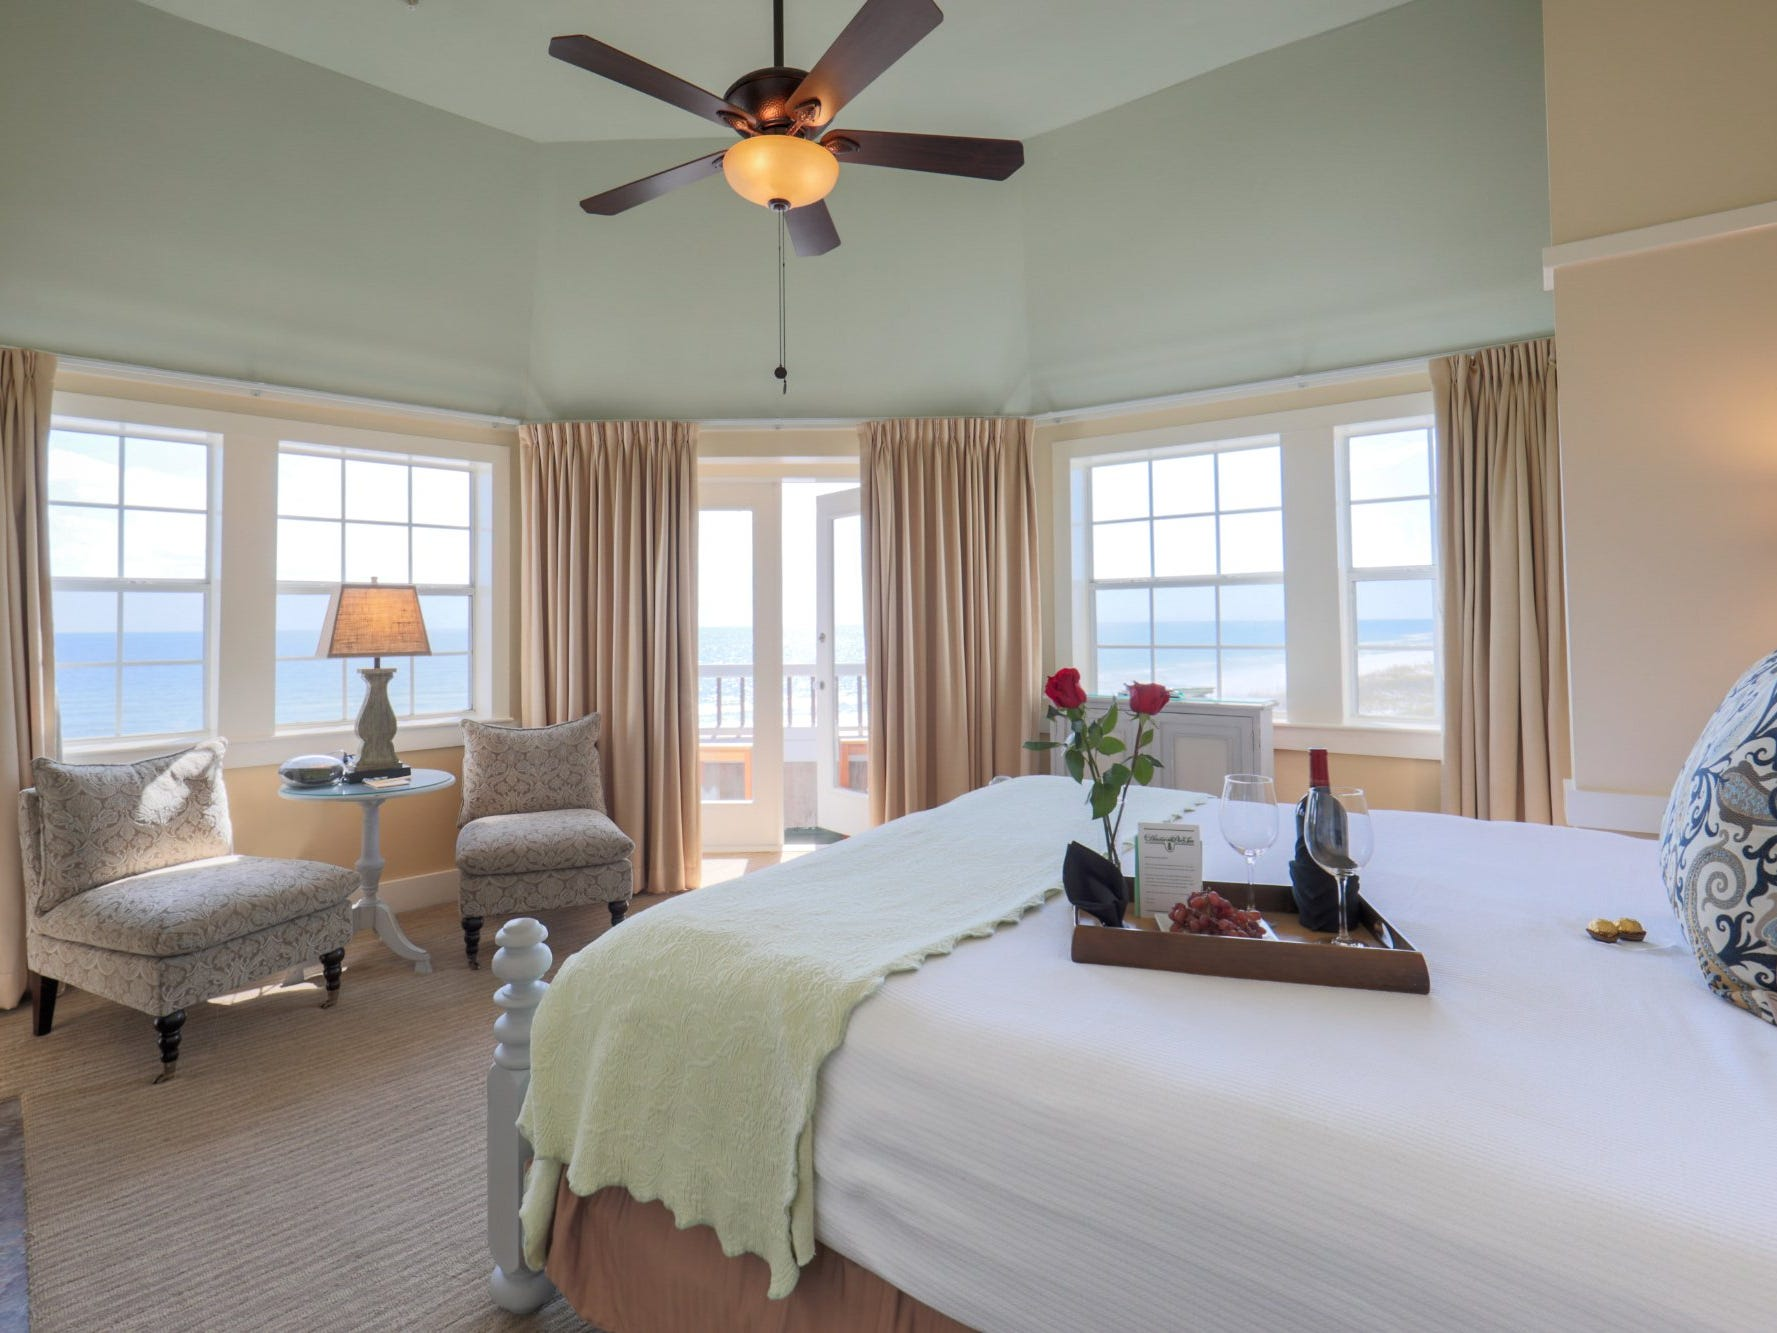 No. 23: Henderson Park Inn in Destin, Florida.